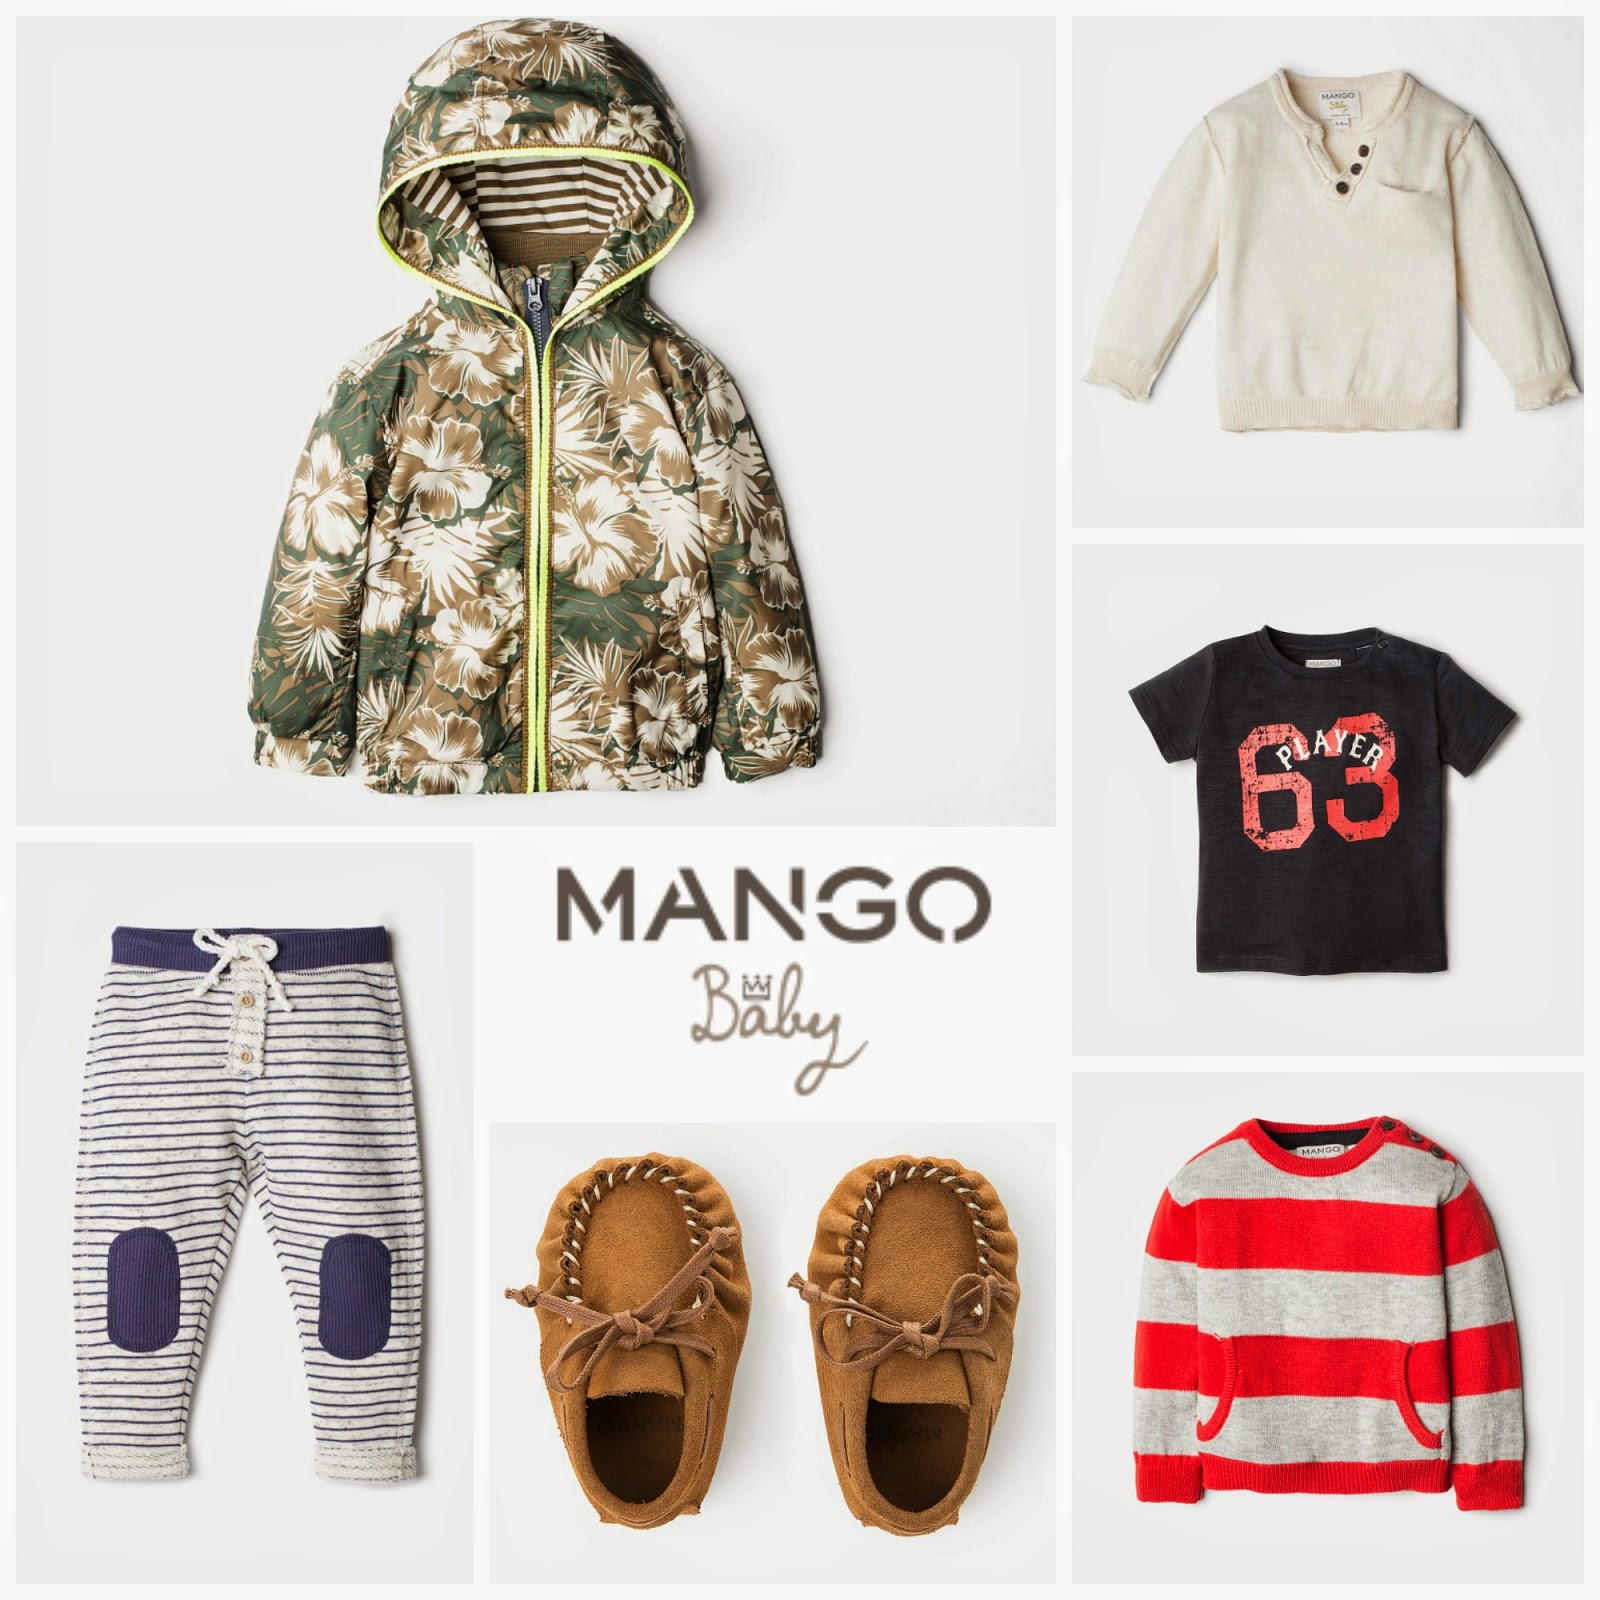 mamasVIB || Mango baby has finally been delivered to store… | mango | new collection | mango baby | spanish fashion | mango | high street | baby clothes | mini clothes | mamasVIB | fashion | baby fashion | kids clothes | mini collections | Mango |